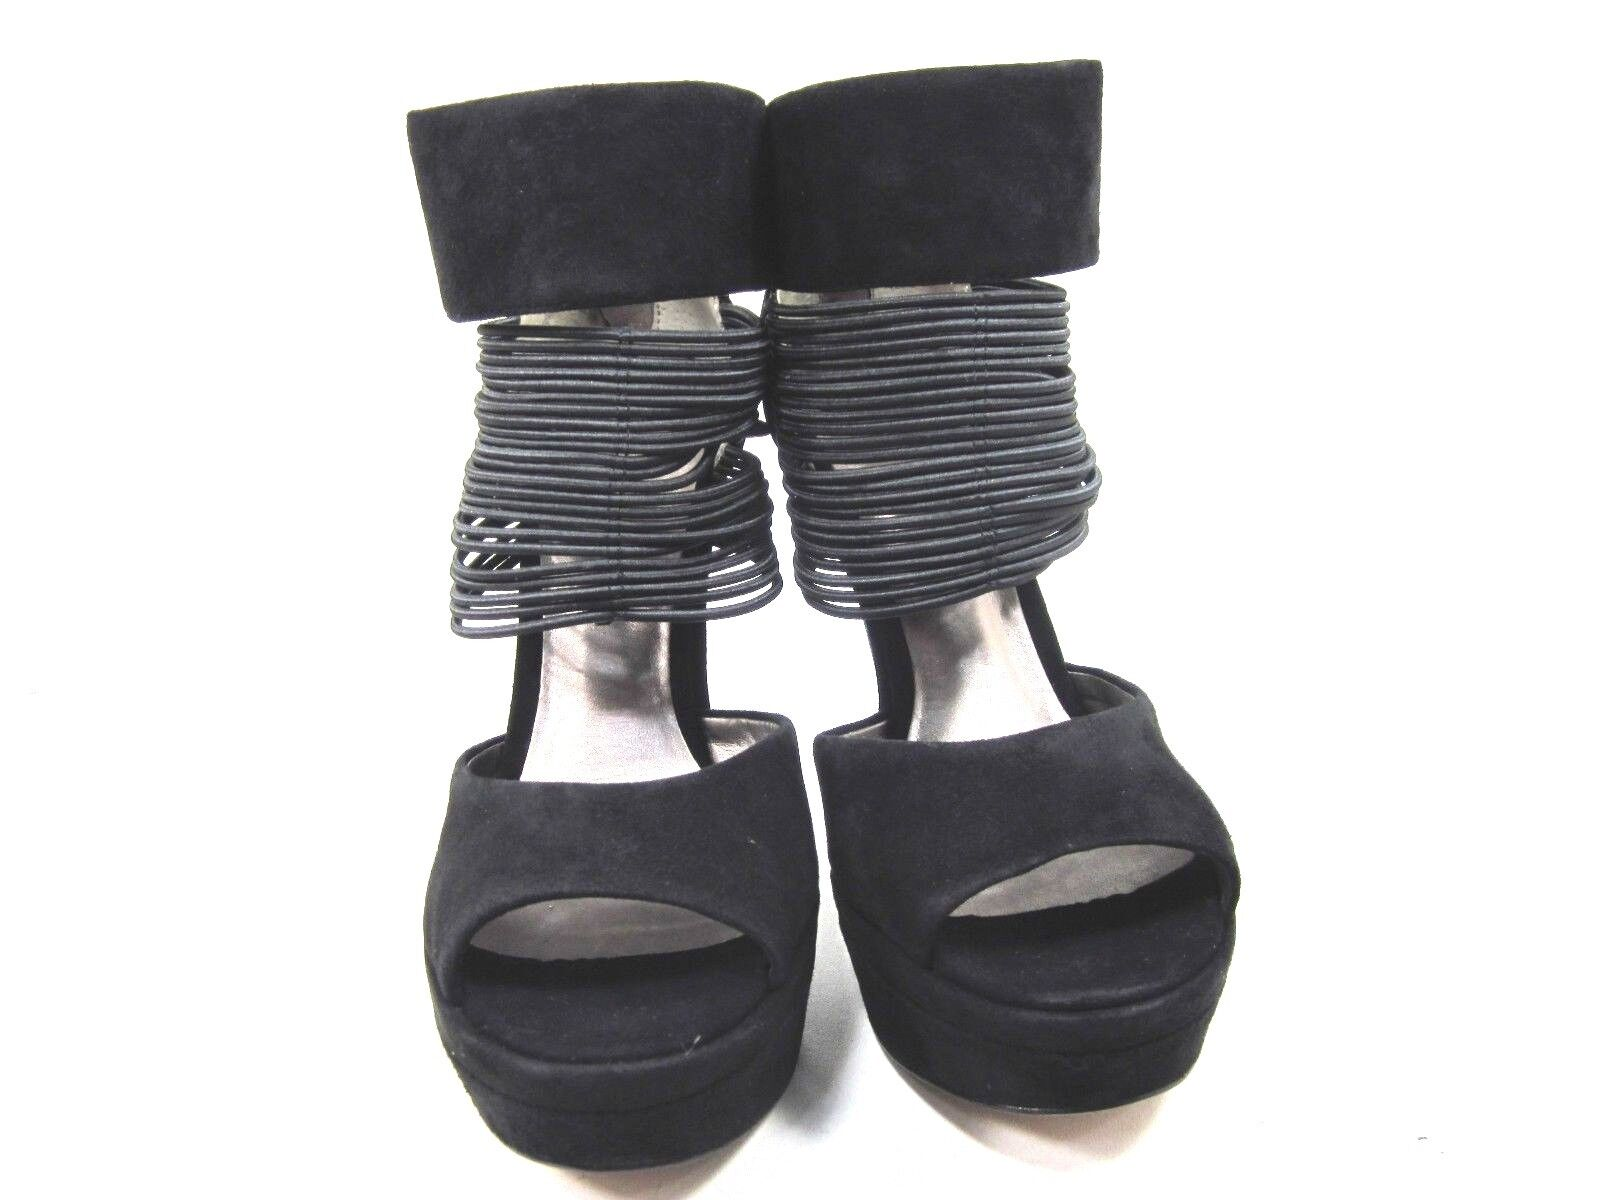 HK BY HEIDI KLUM KLUM KLUM donna GILLIAN PLATFORM SANDALS,nero,US Dimensione 8.5,MEDIUM,NEW f3b89c